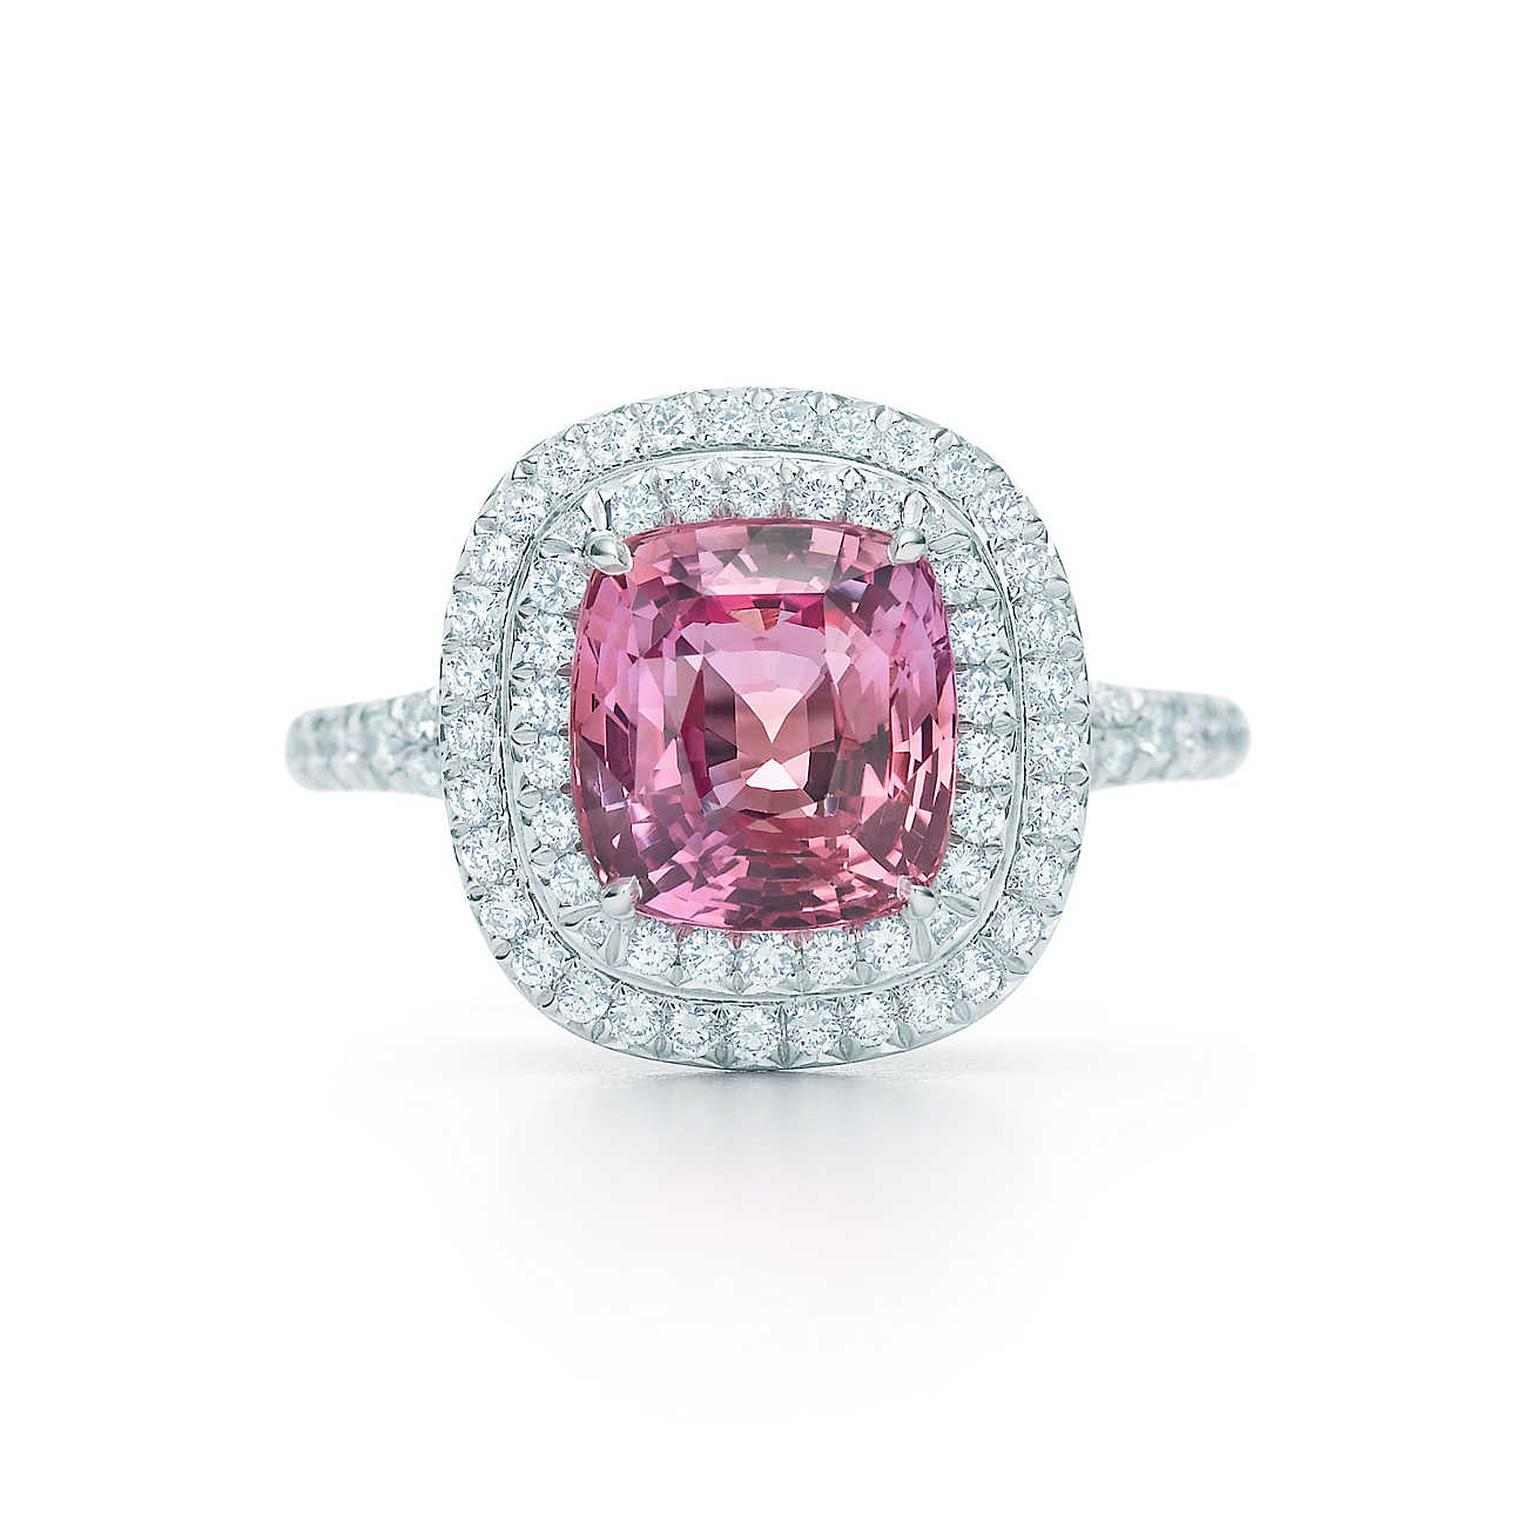 sri crop article upscale sapphires the morris luxury background lankan in false s around subsampling cartier chaumet david sapphire ring padparadascha we jewellery white padparadscha scale world bridal pad princess tiffany reveal eugenie